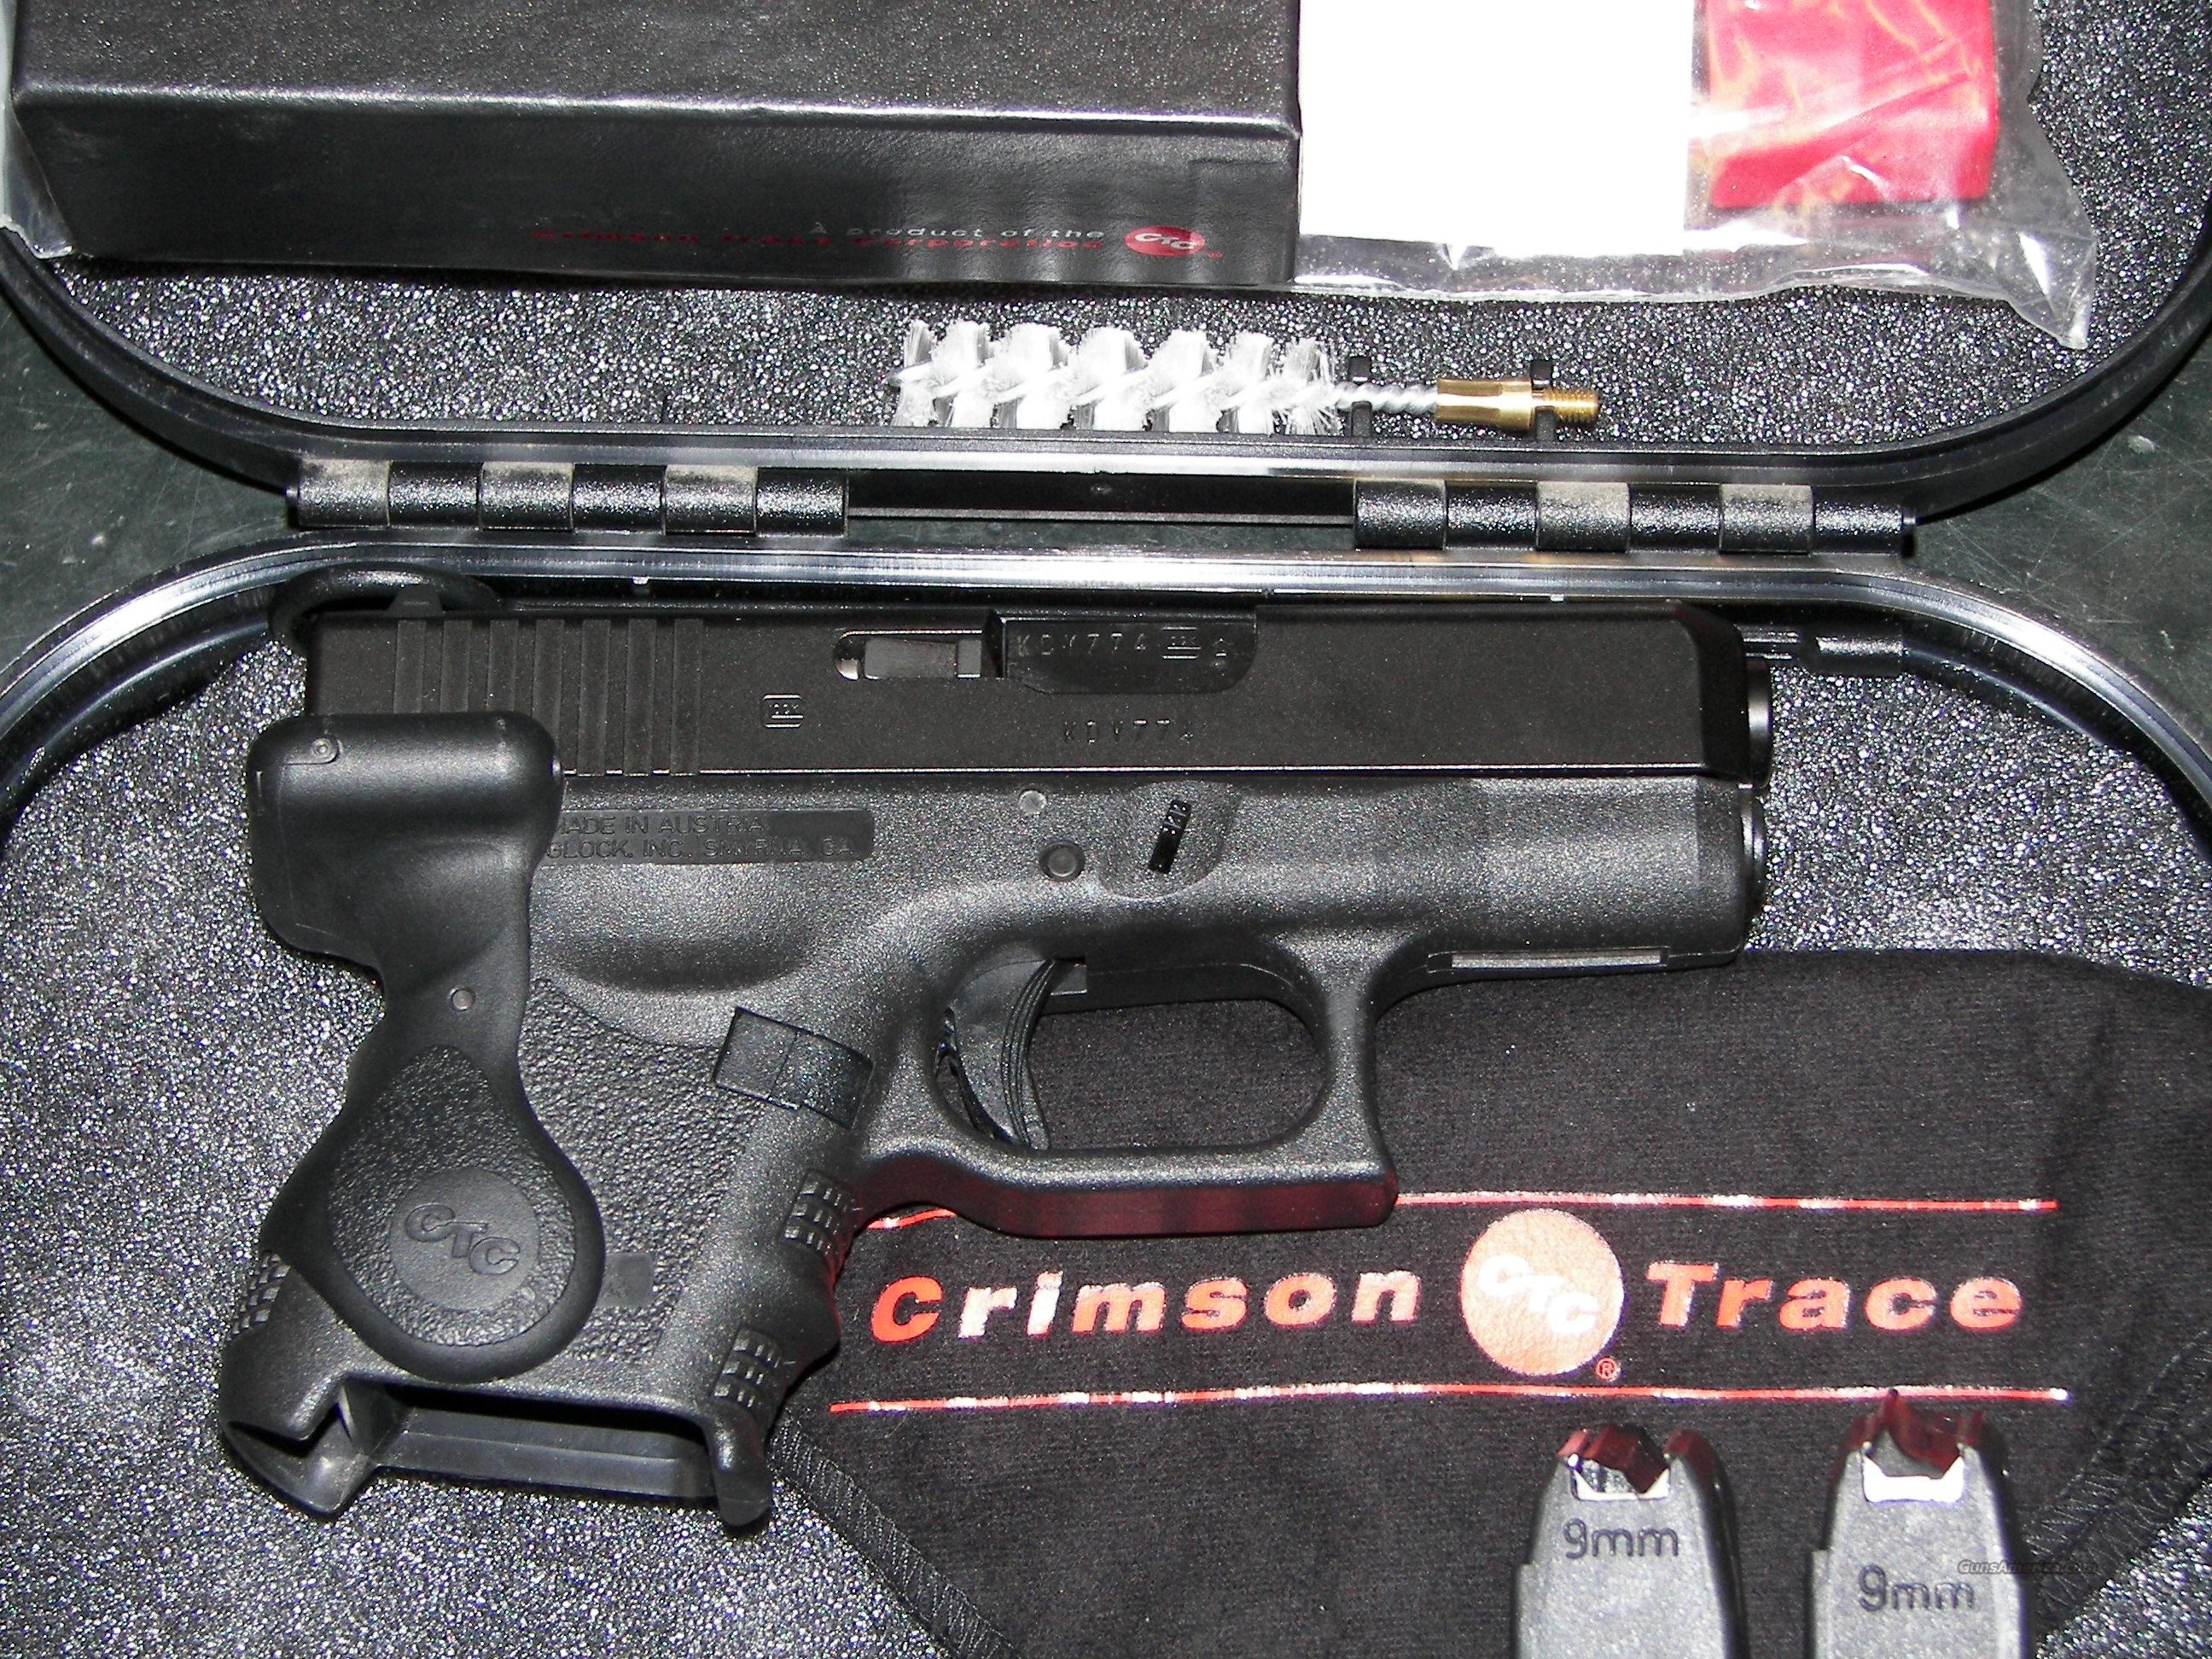 GLOCK MODEL 26 9MM   W/ CRIMSON TRACE LASERGRIP  Guns > Pistols > Glock Pistols > 26/27